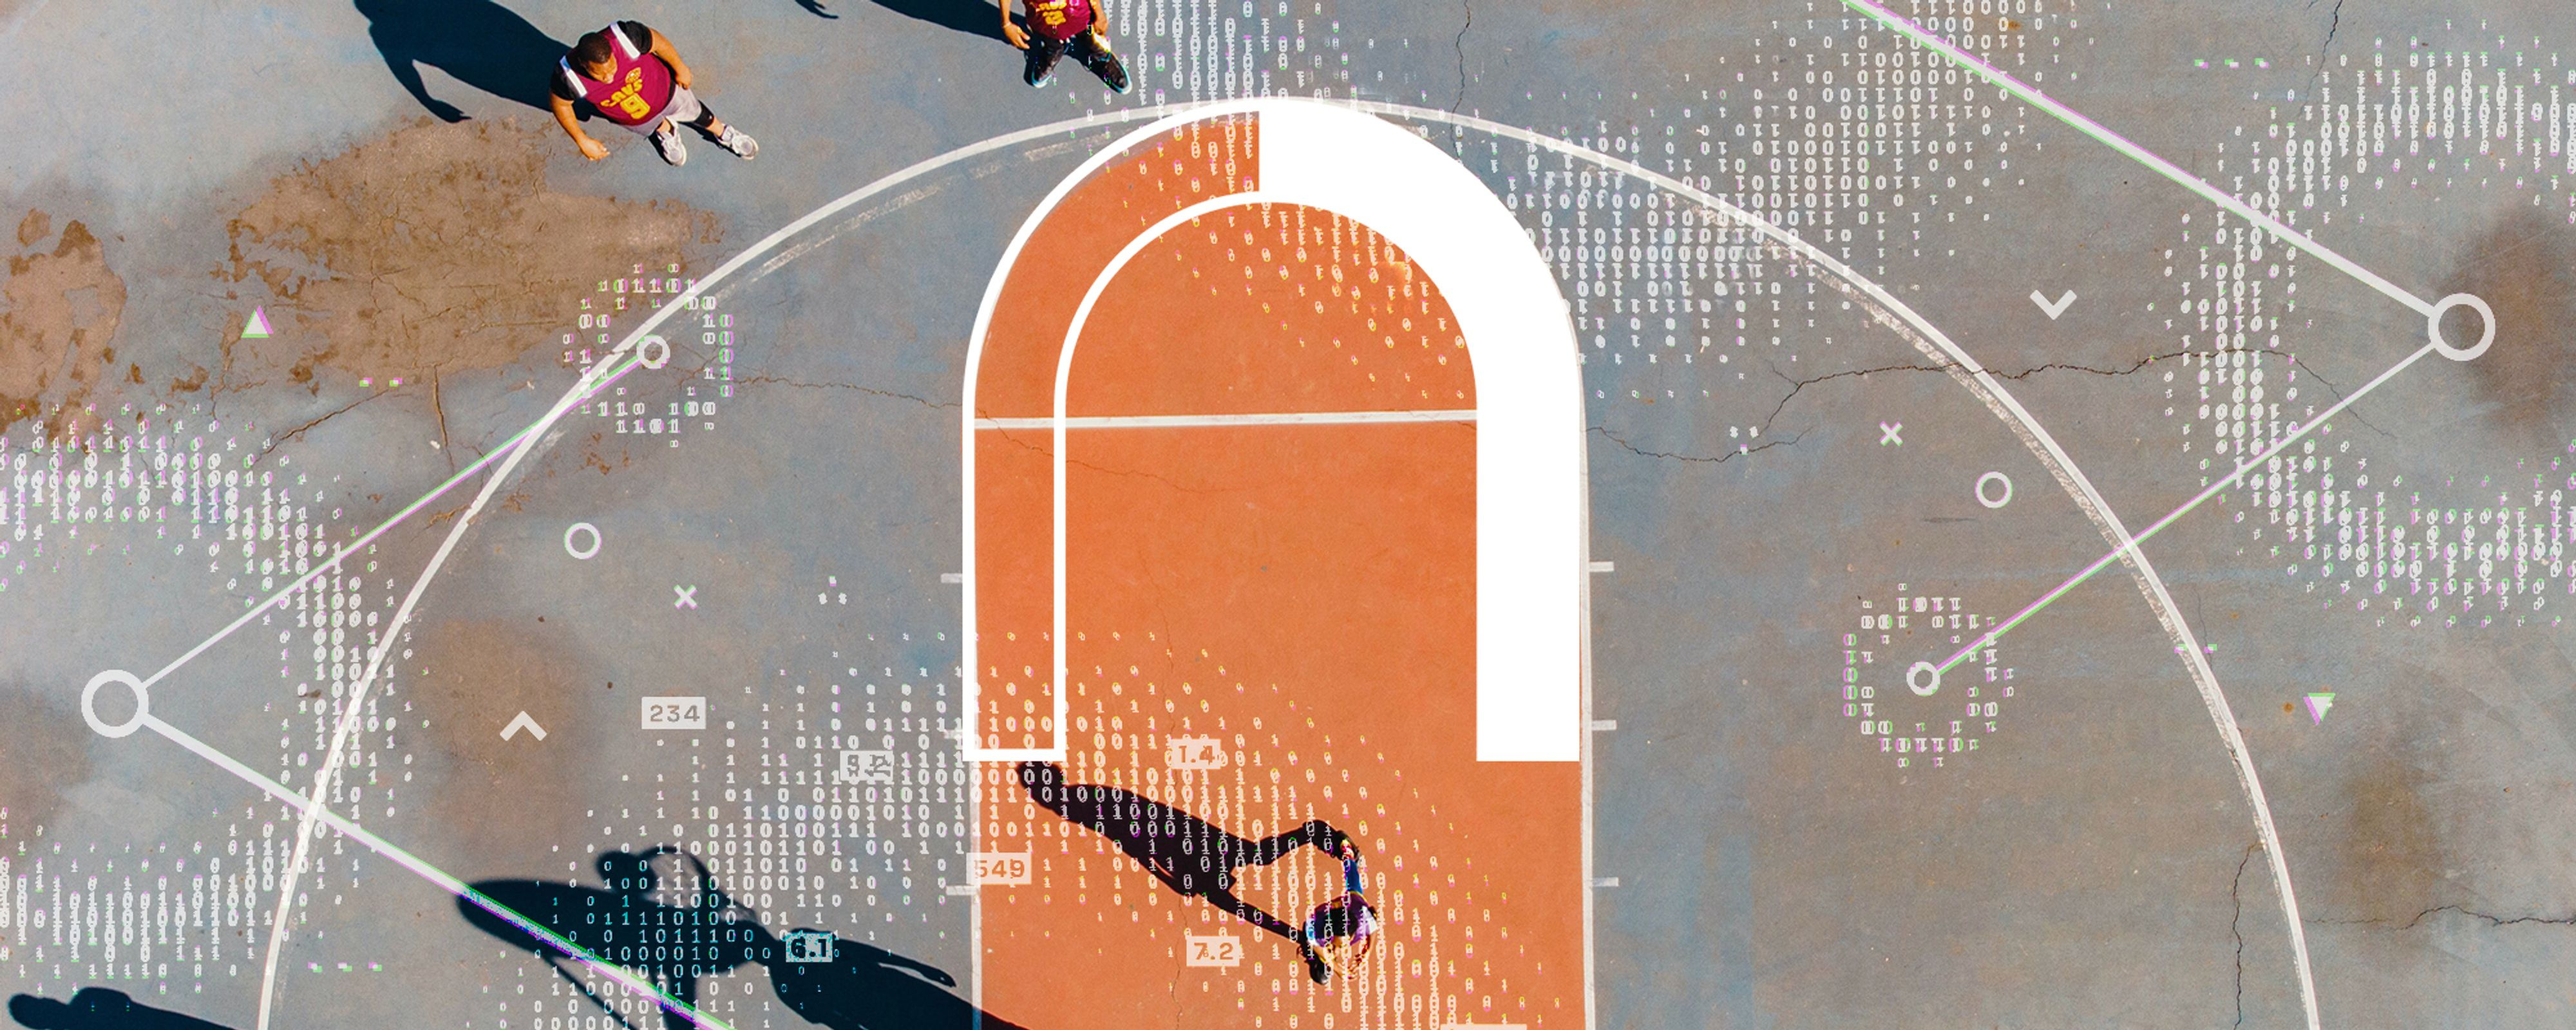 A basketball court is overlaid with digitized circles and lines